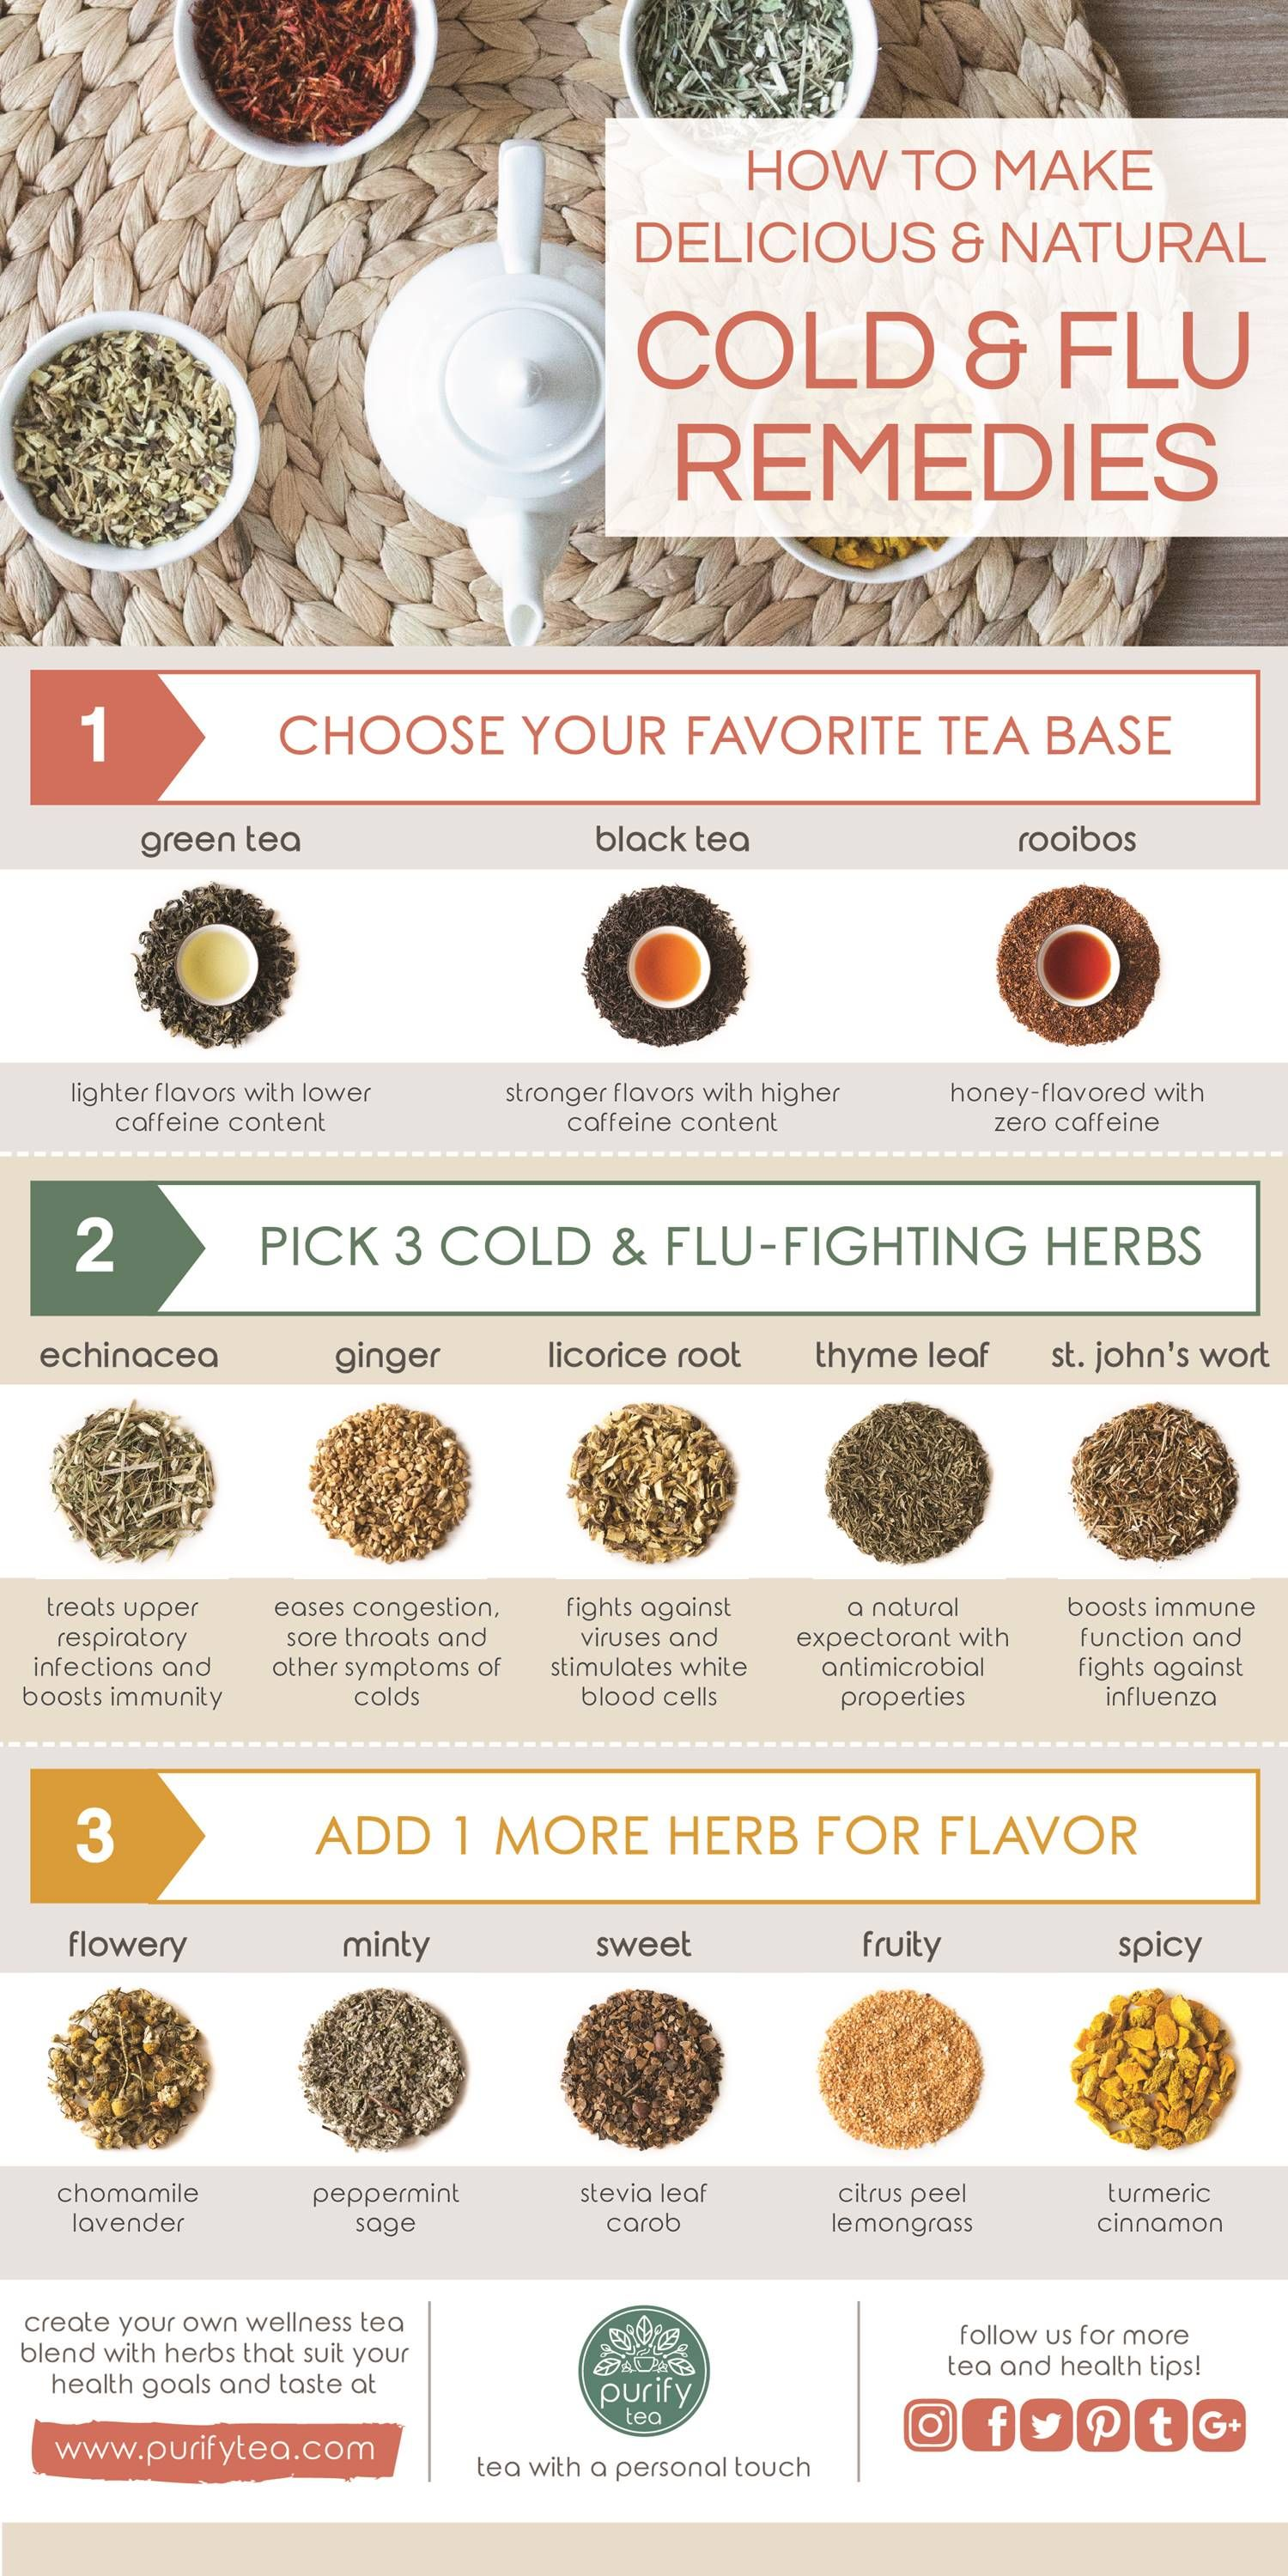 Chinese cancer cure herbs bibliography - Delicious And Effective Herbal Remedies For Colds And Flu Infographic An Easy